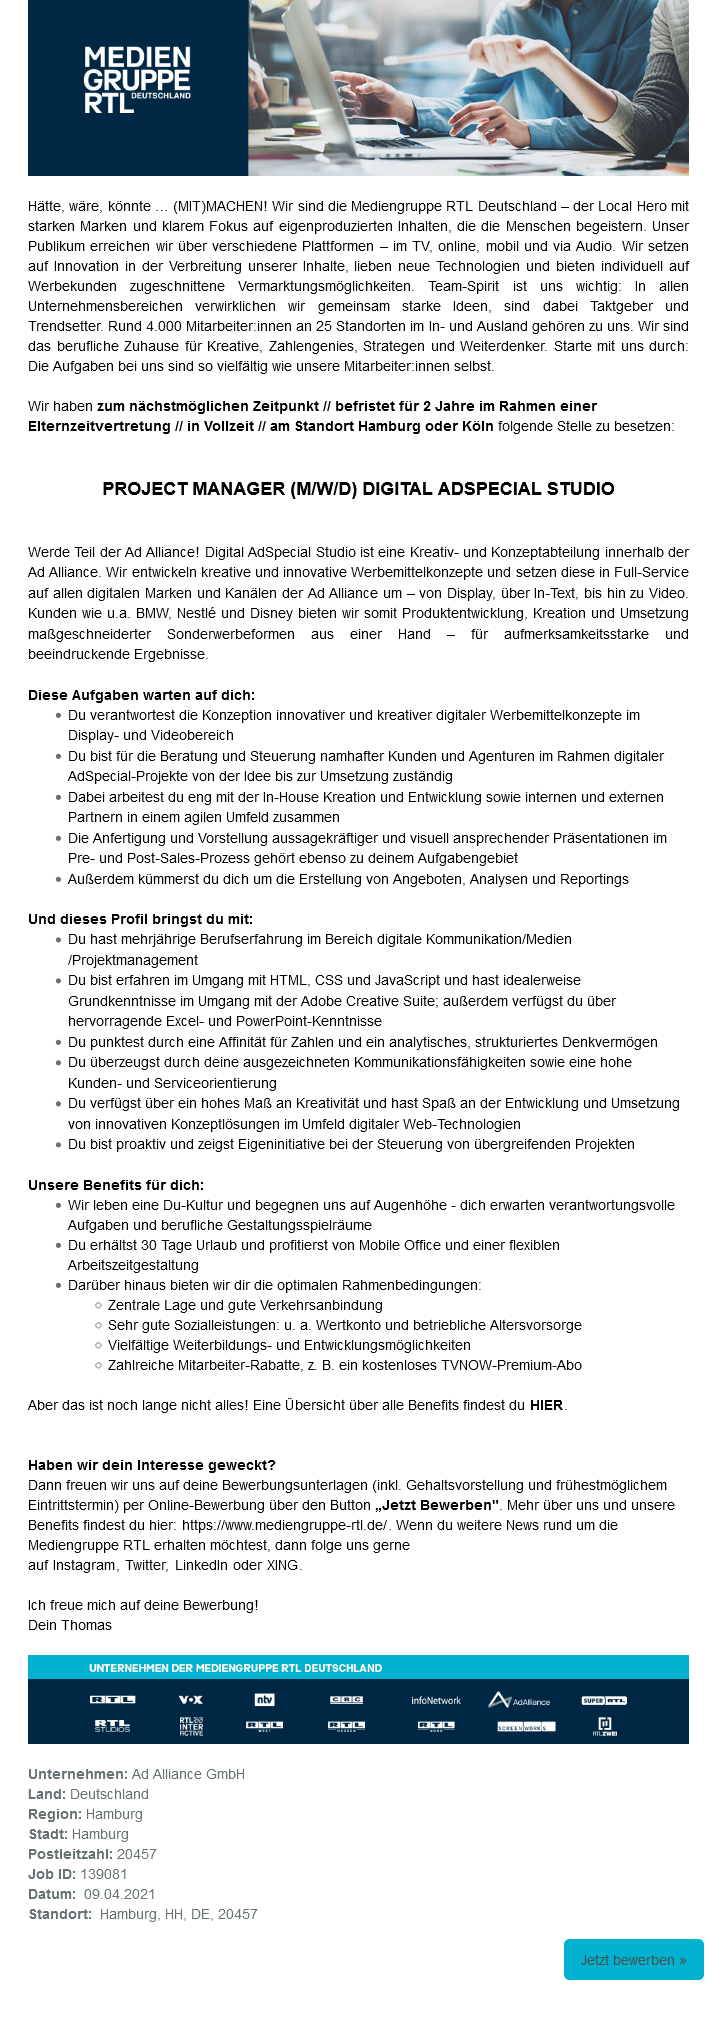 Project Manager (m/w/d) Digital AdSpecial Studio (Ad Alliance), befristet